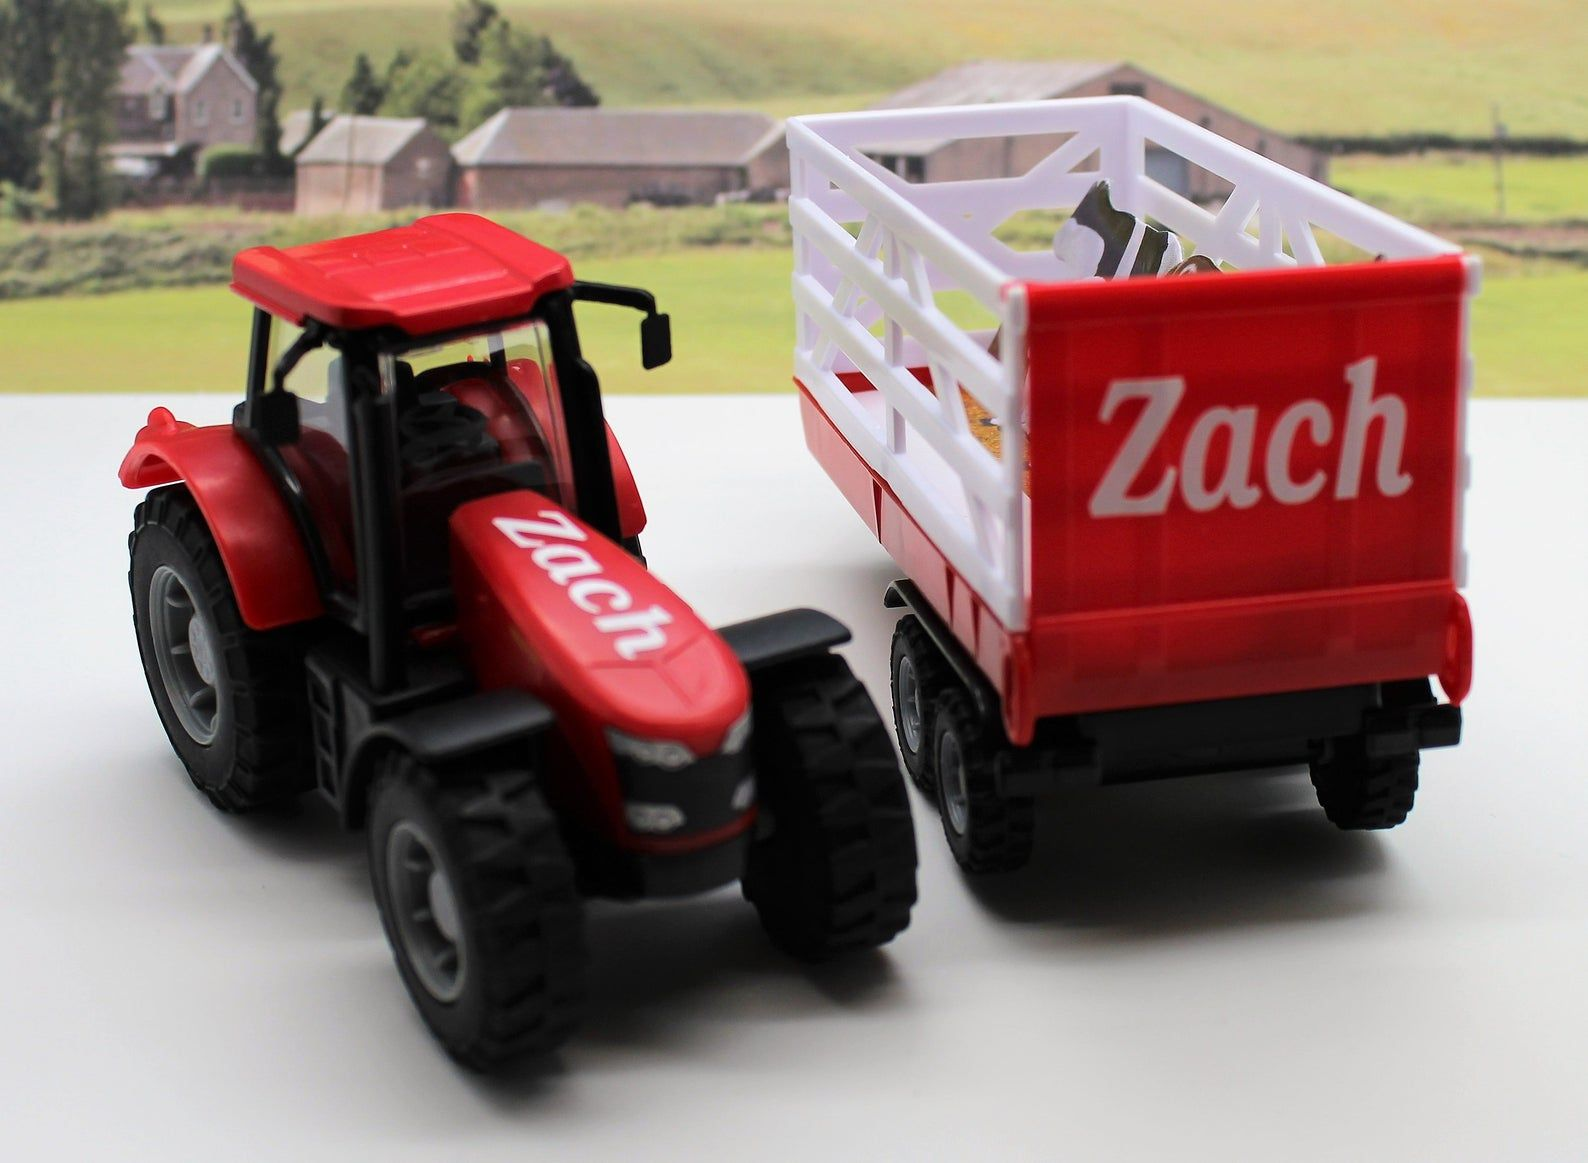 Personalised Name Gift Tractor Trailer Boys Toy Farm Tractor Etsy Tractor Trailers Tractors Toy Christmas Presents